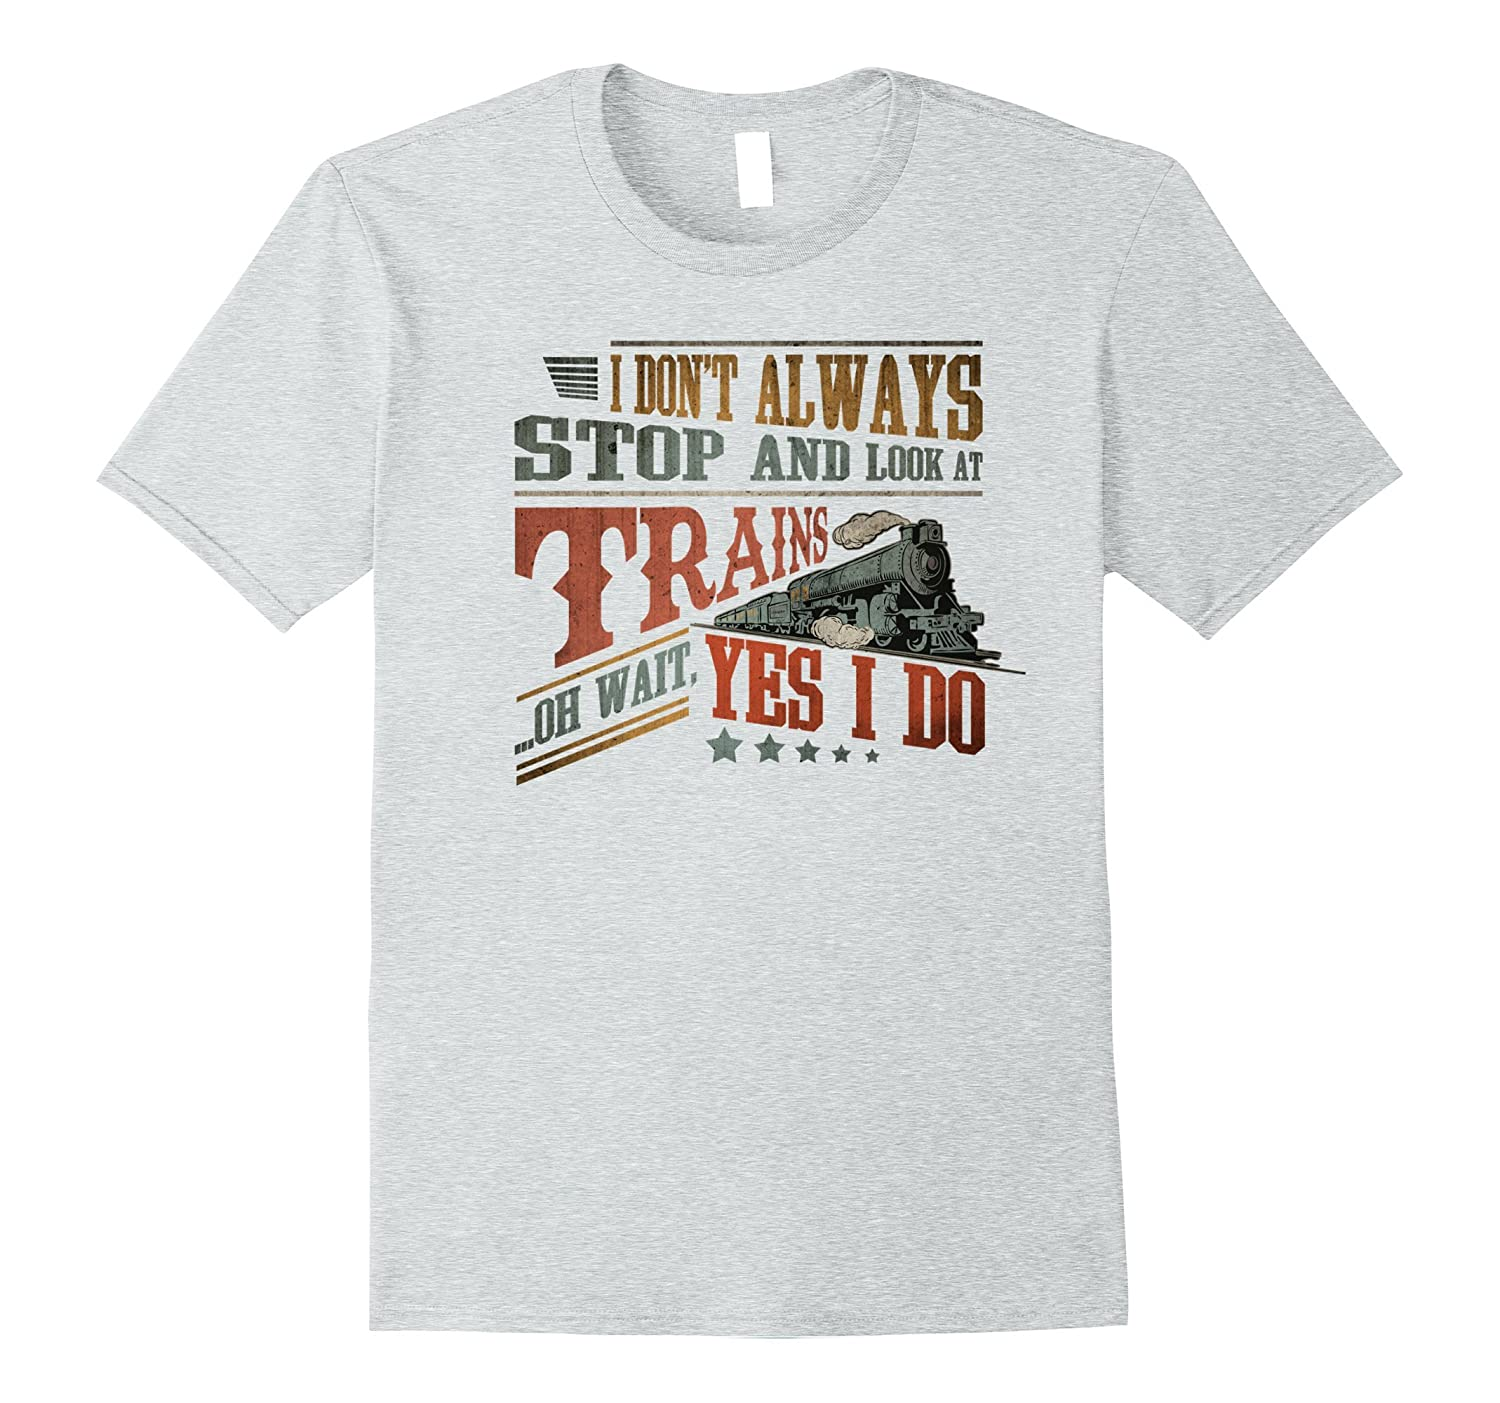 c64dee6f0 Premium I DONT ALWAYS STOP LOOK AT TRAINS Funny T-Shirt-PL – Polozatee